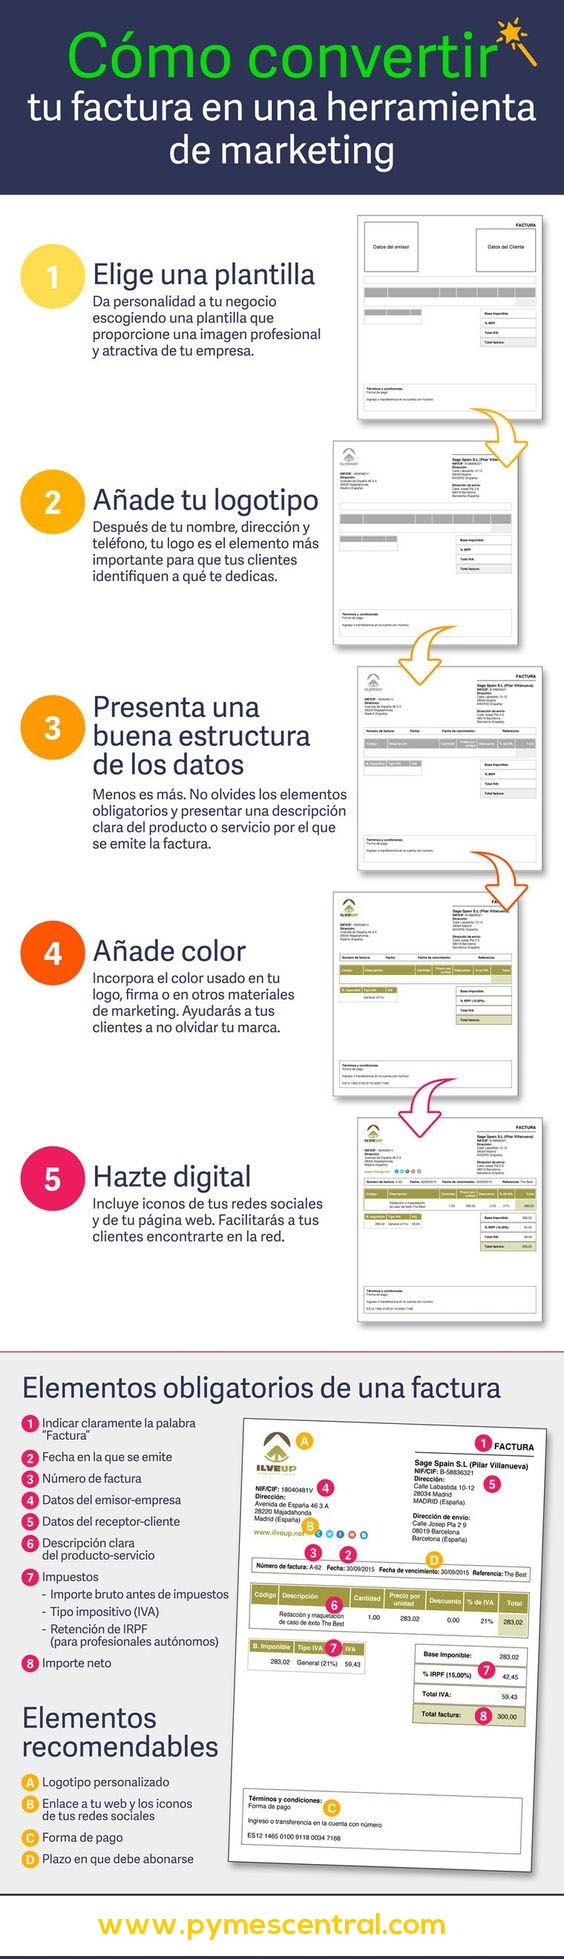 como convertir una factura en una herramienta de marketing